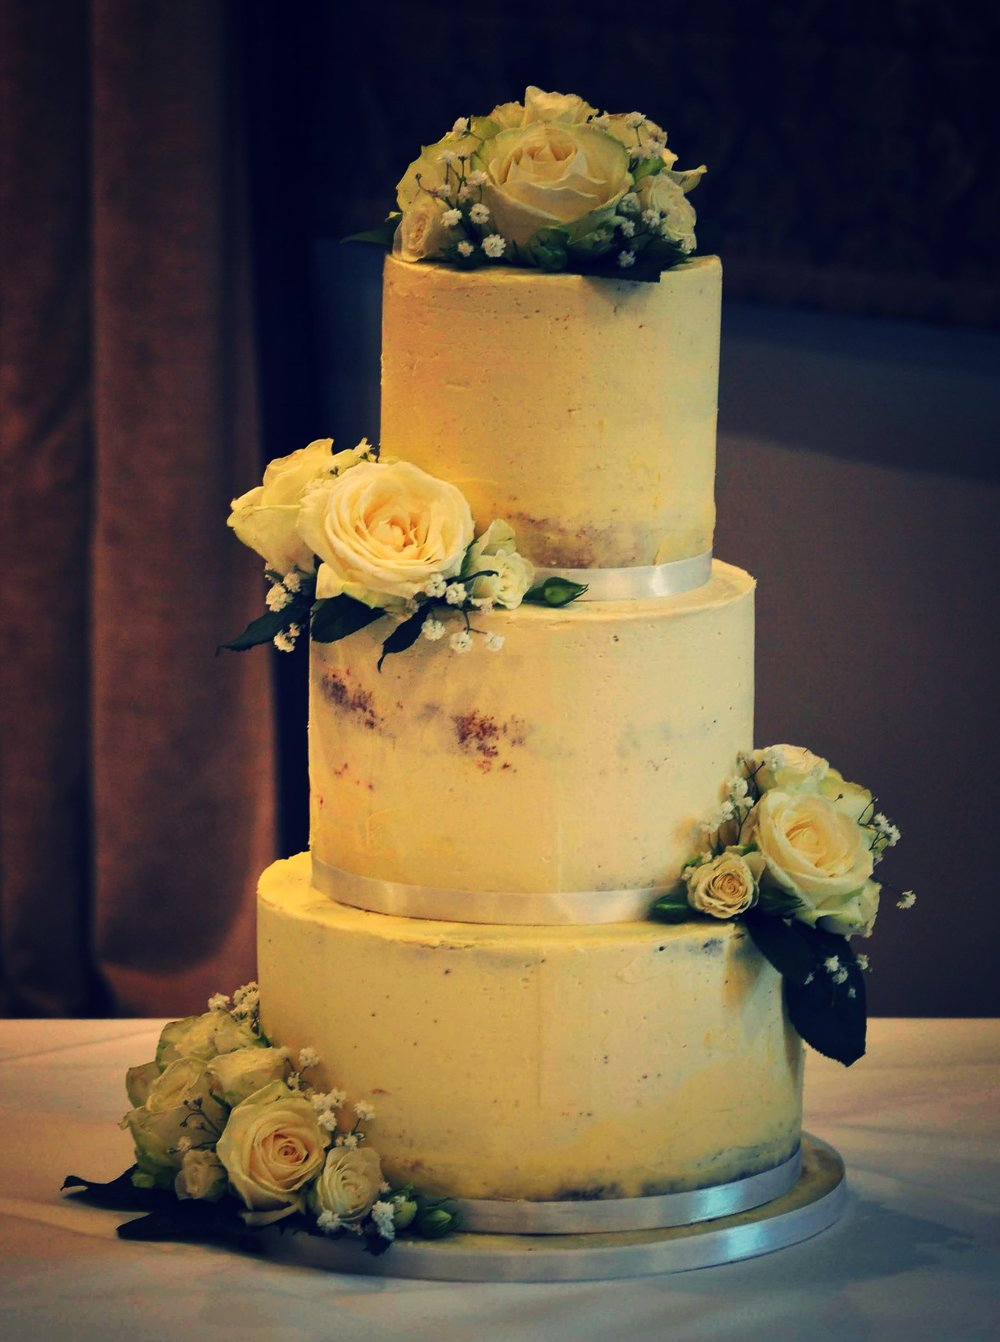 Semi naked wedding cake - Here is a fabulously delicious gluten free wedding cake. The tiers were white chocolate and Baileys cream, vanilla with fresh strawberry jam and zesty lemon on the top. Scumptious!